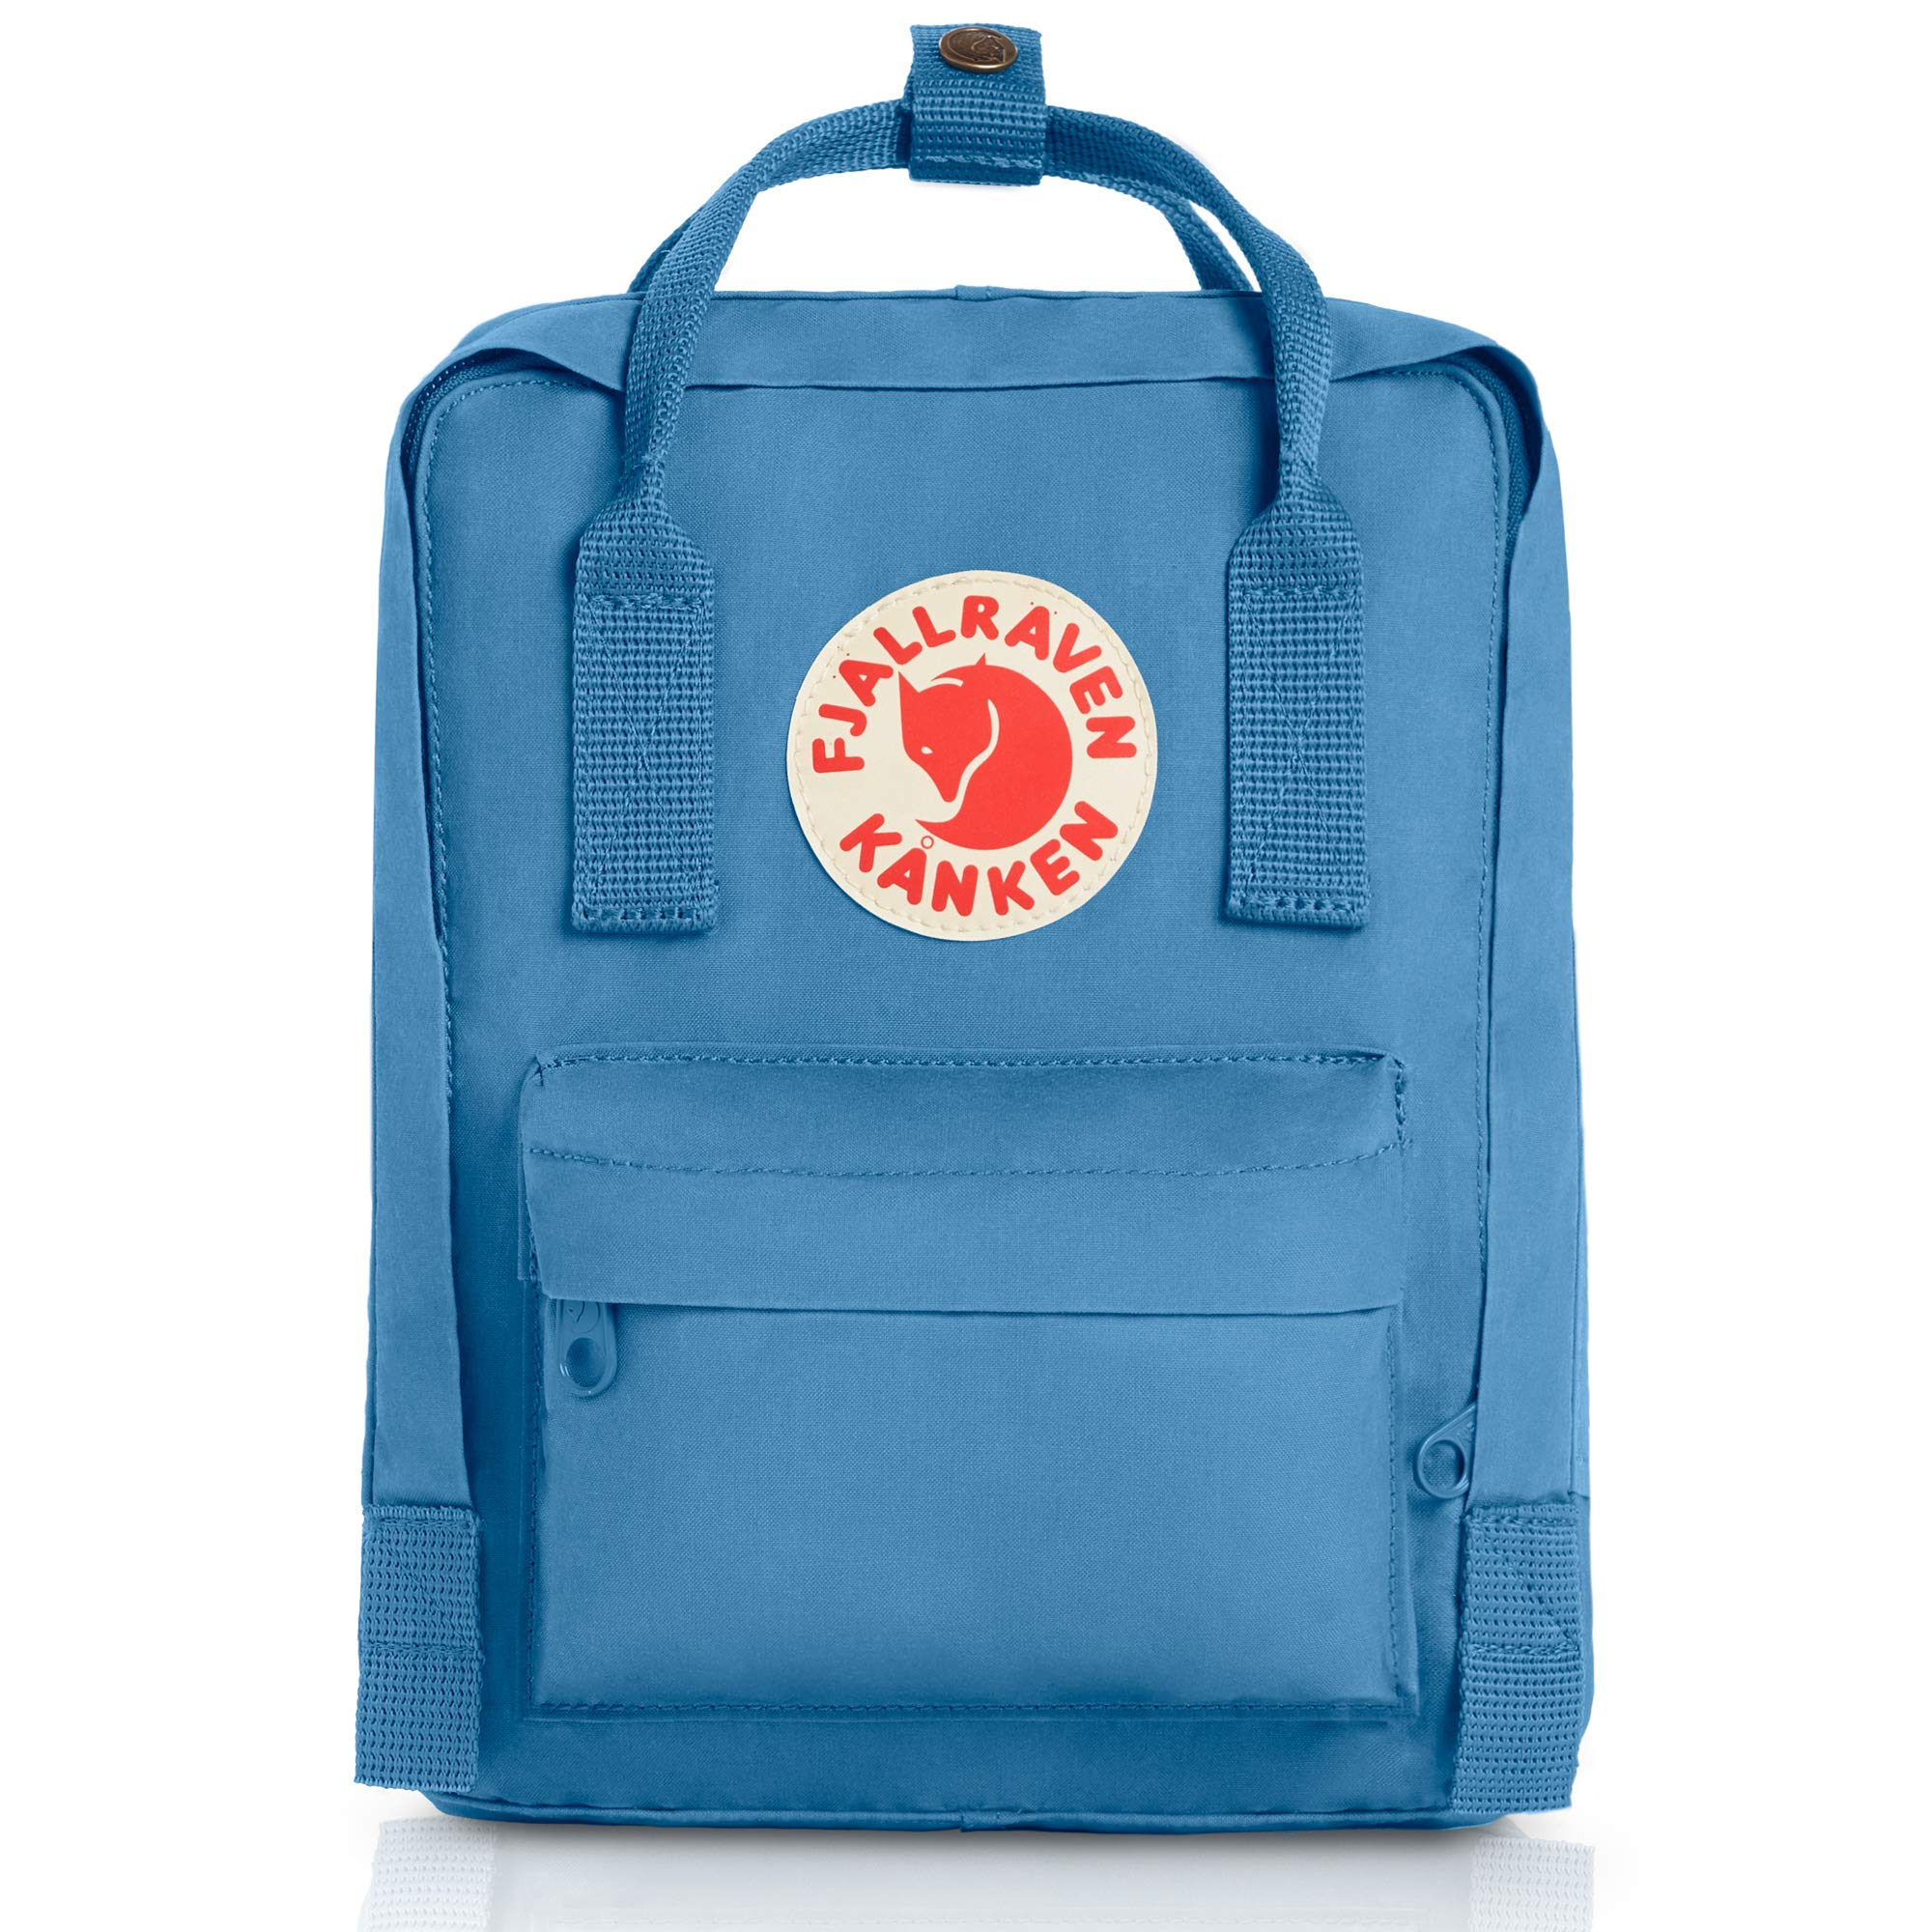 Fjallraven - Kanken-Mini Classic Pack, Heritage and Responsibility Since 1960, Air Blue, One Size